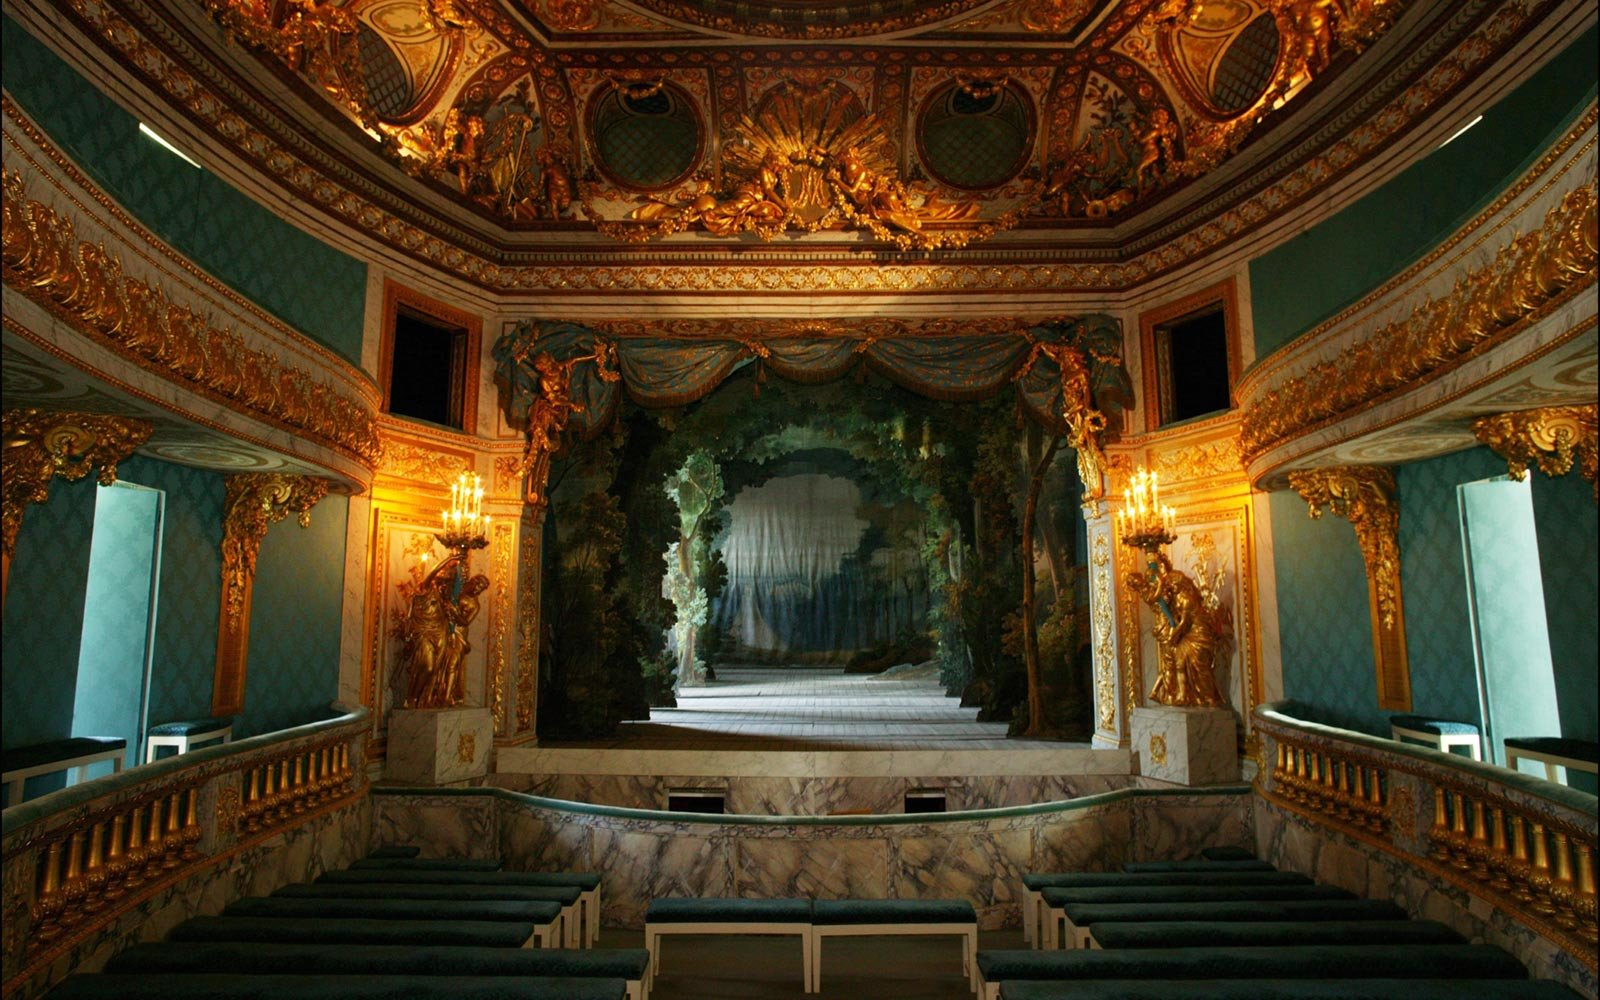 Theater Room Ideas Marie Antoinette History - Retrace Her Life In France